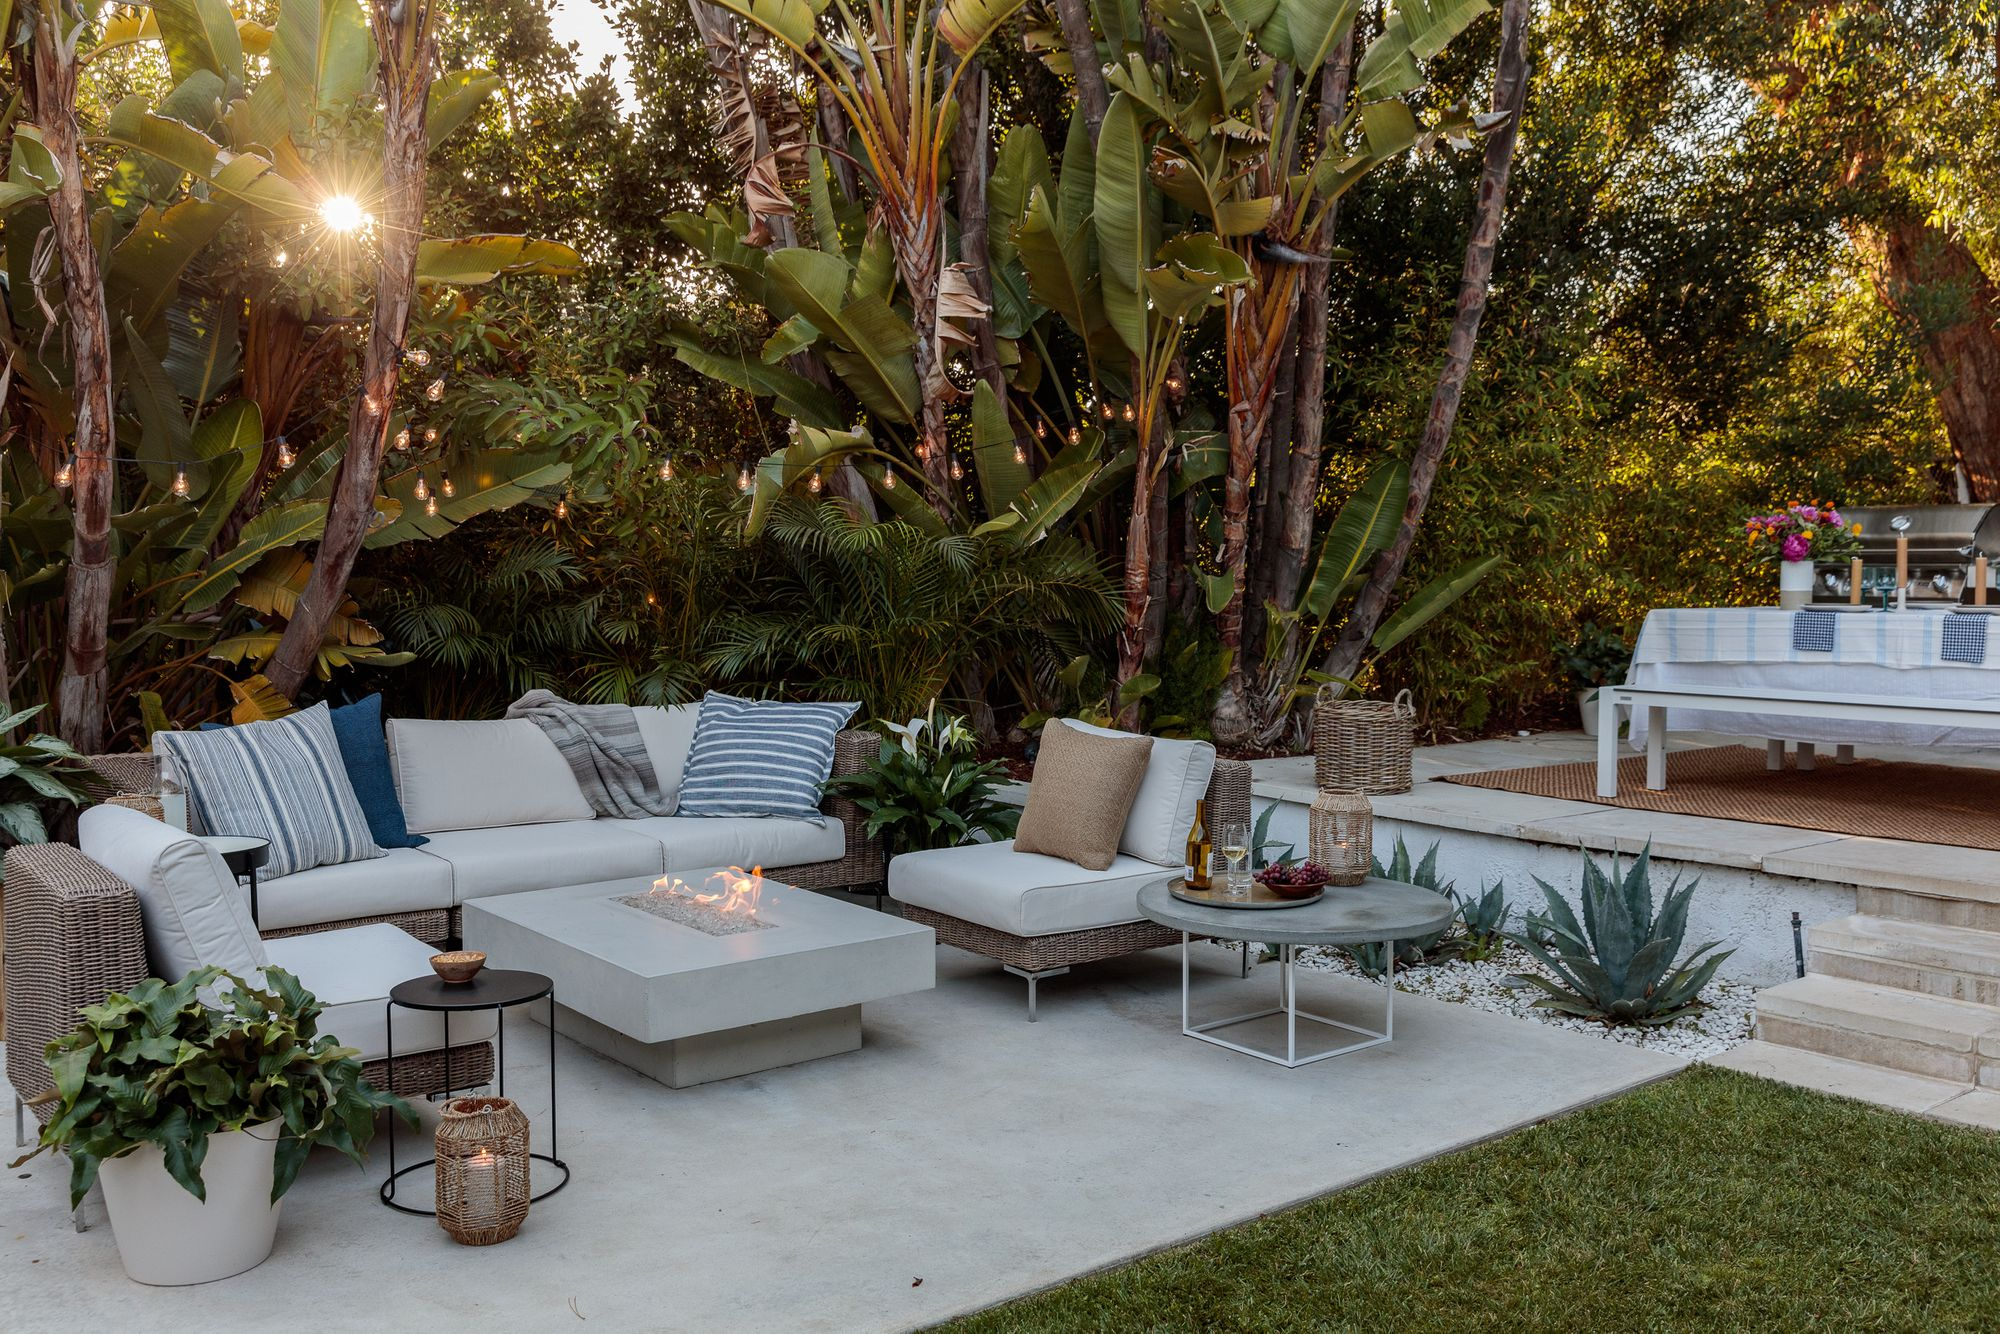 Outdoor furniture in a patio space